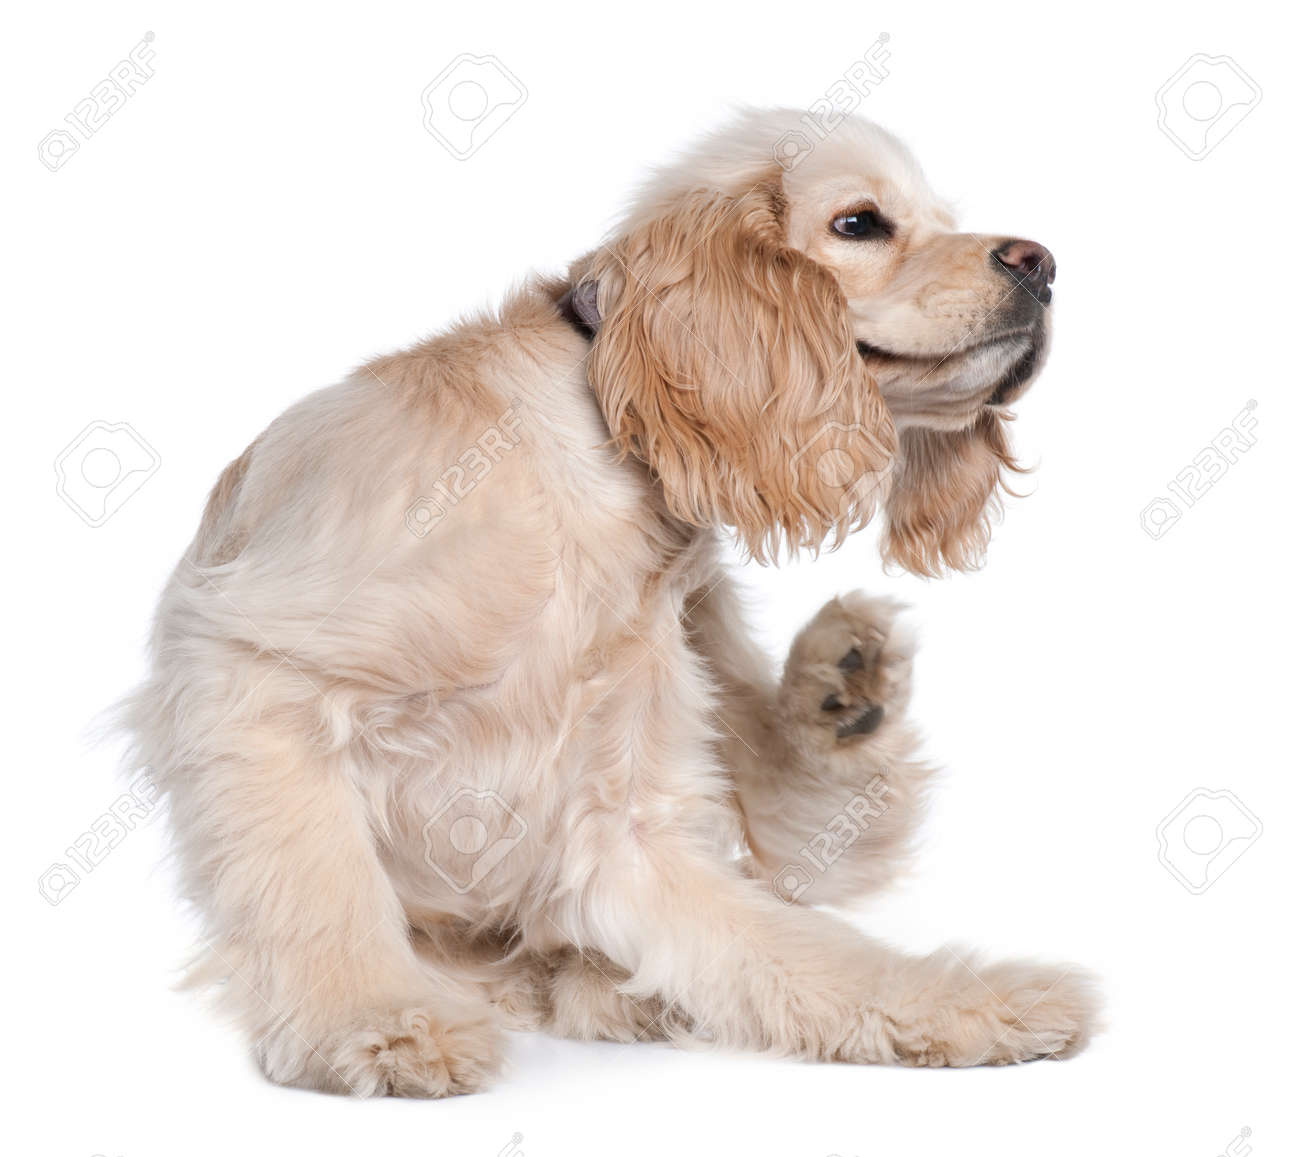 Young American Cocker Spaniel scratching, 9 months old, in front of white background - 90388273